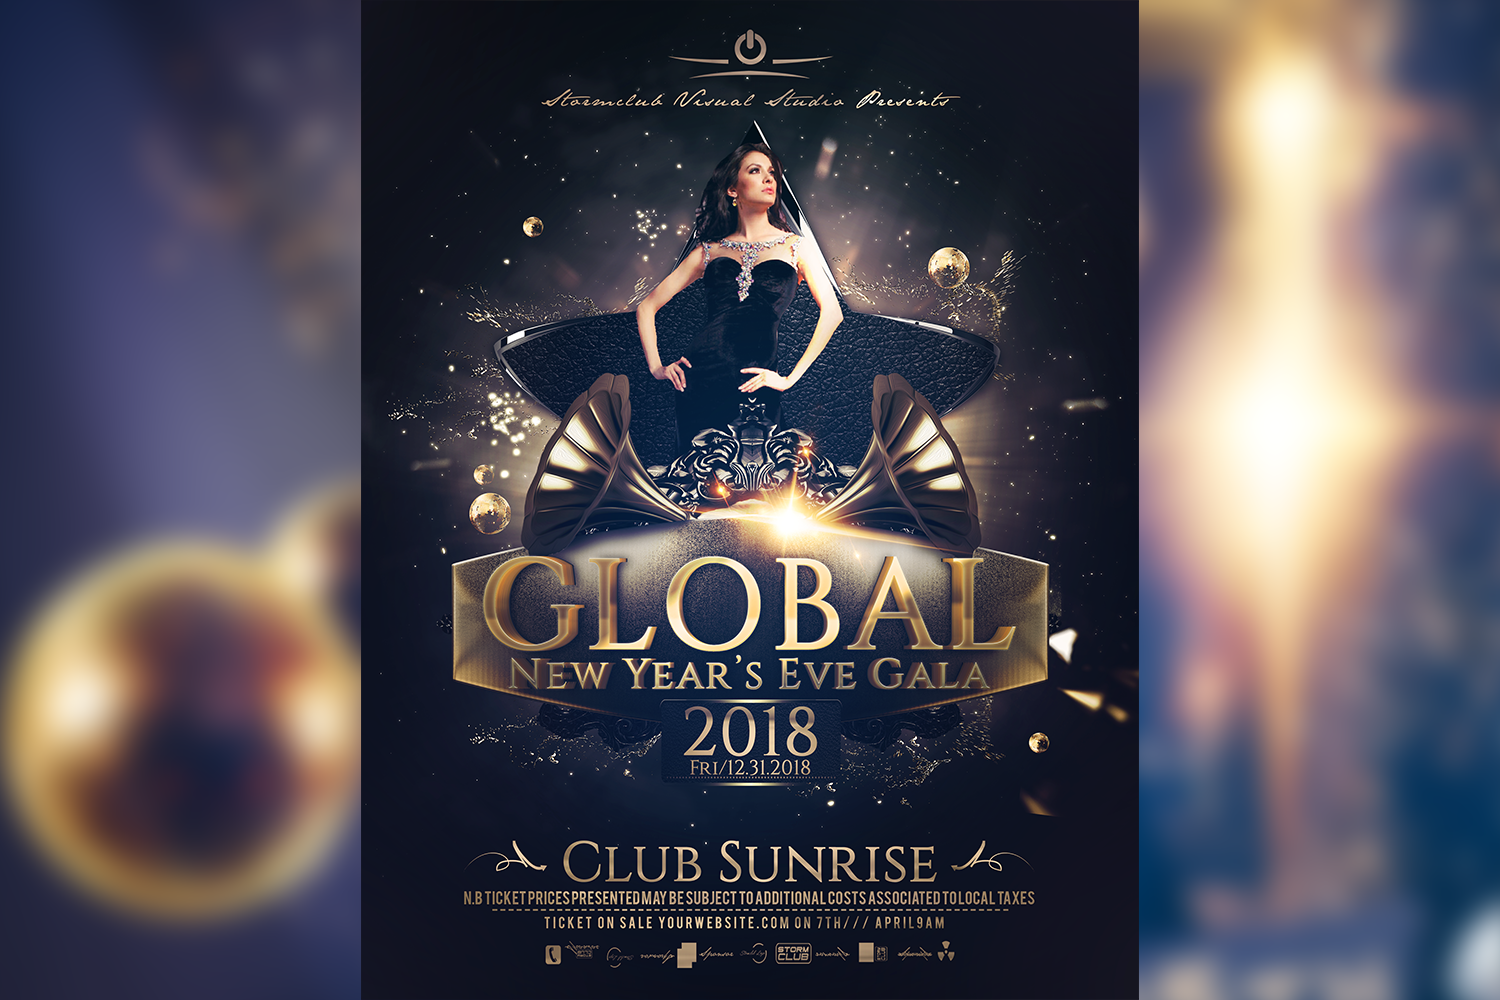 New Years Eve Gala Poster example image 1